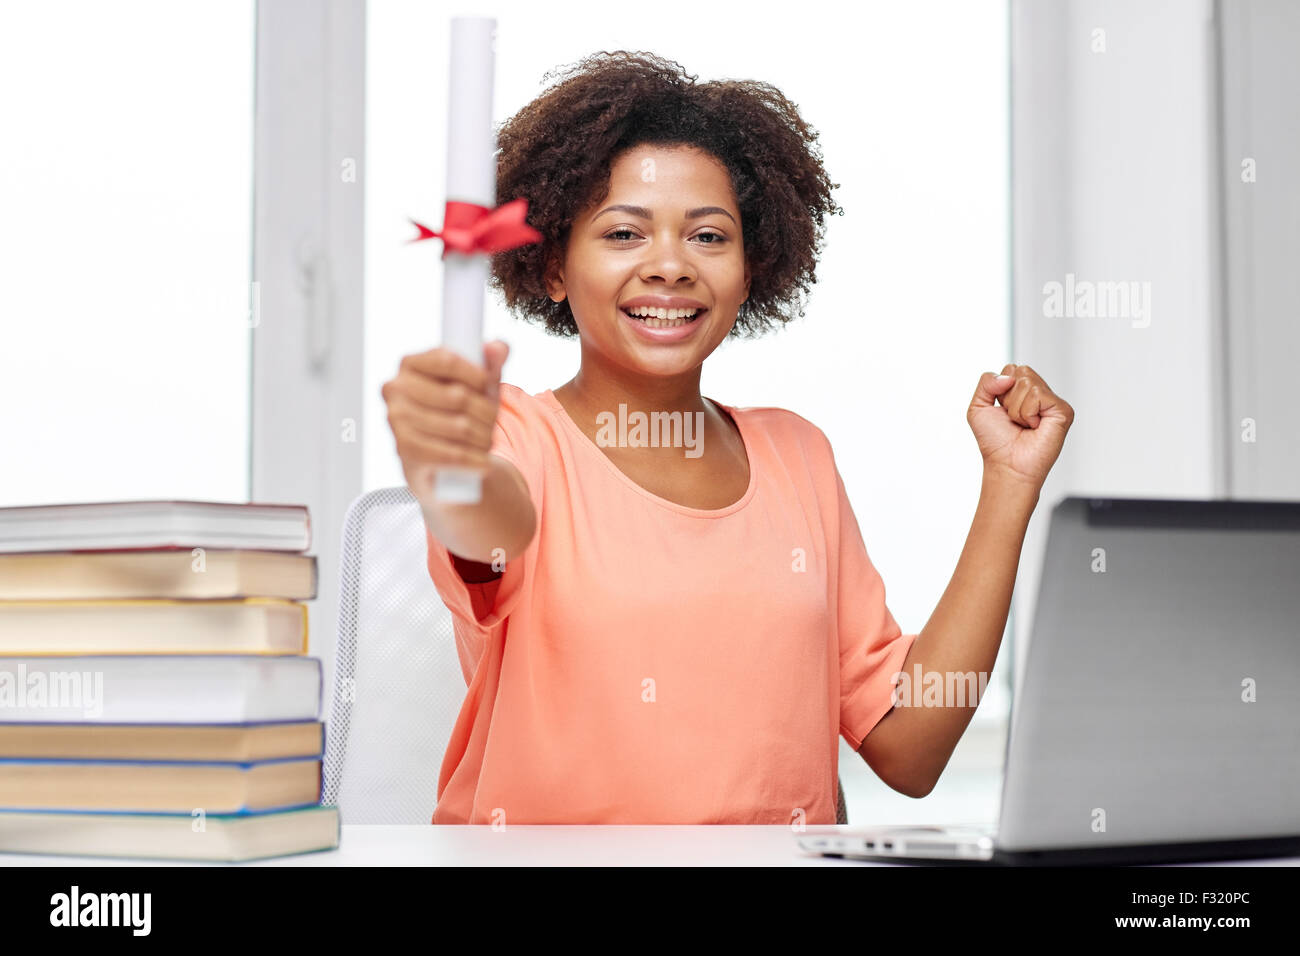 happy african woman with laptop, books and diploma - Stock Image